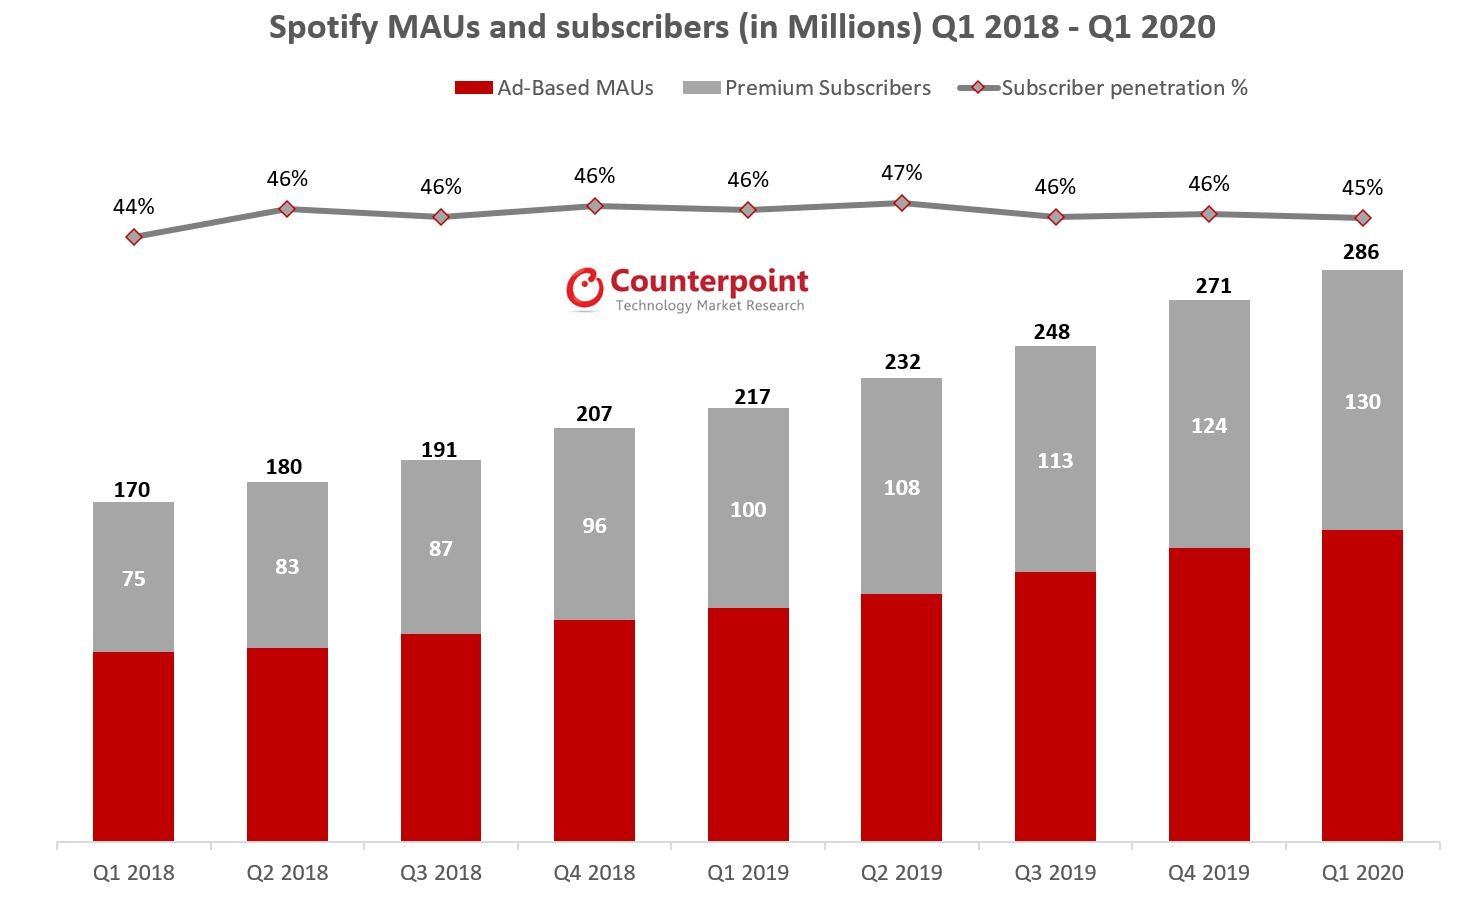 Spotify MAUs and subscribers (in Millions) Q1 2018 - Q1 2020